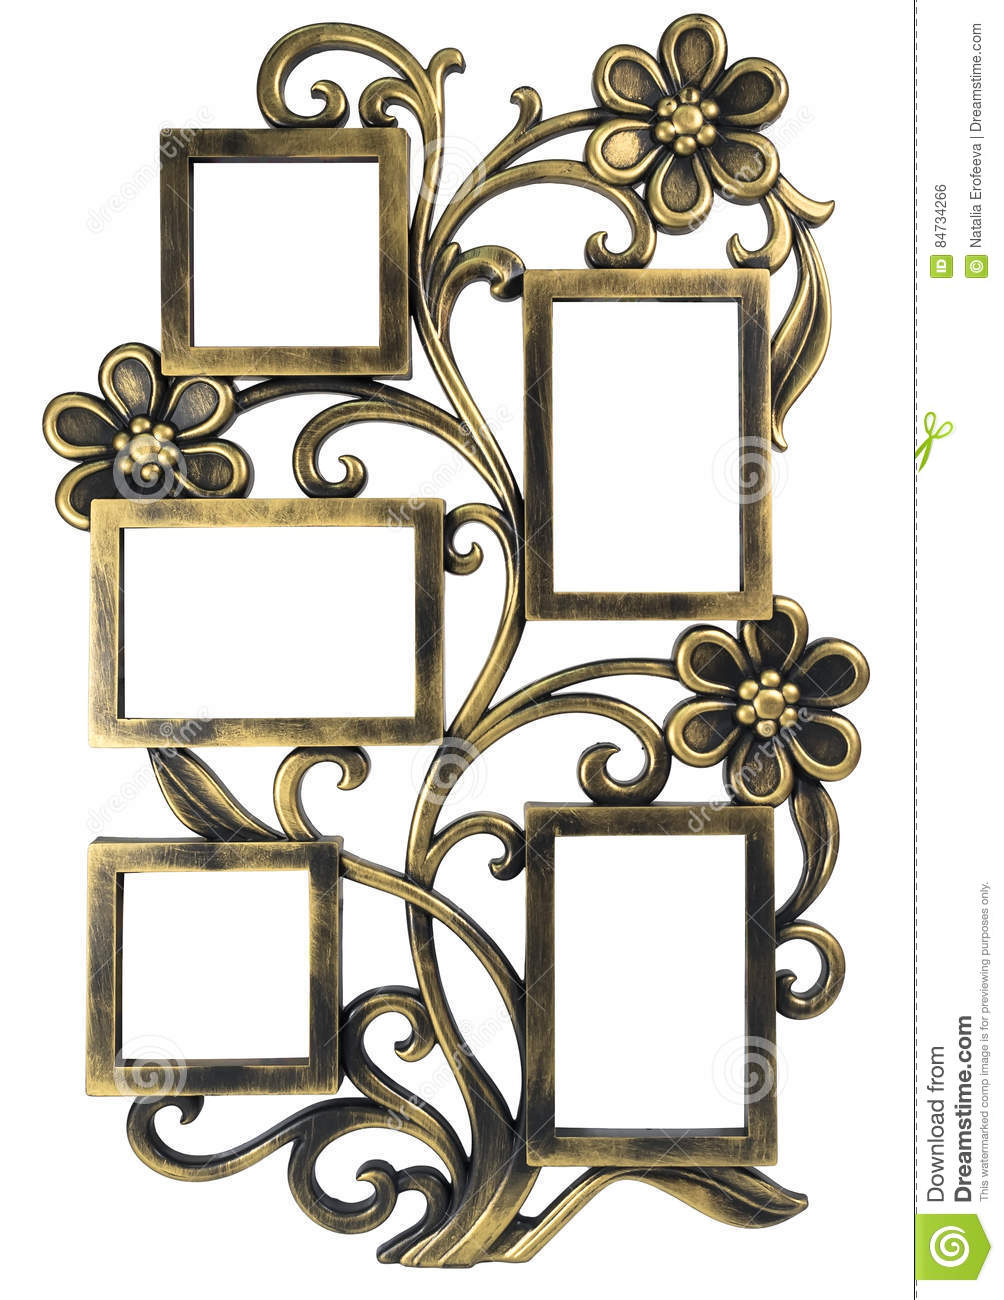 Antique golden photo frame with elements of floral forged ornament. Set 5 five frames. isolated on white background